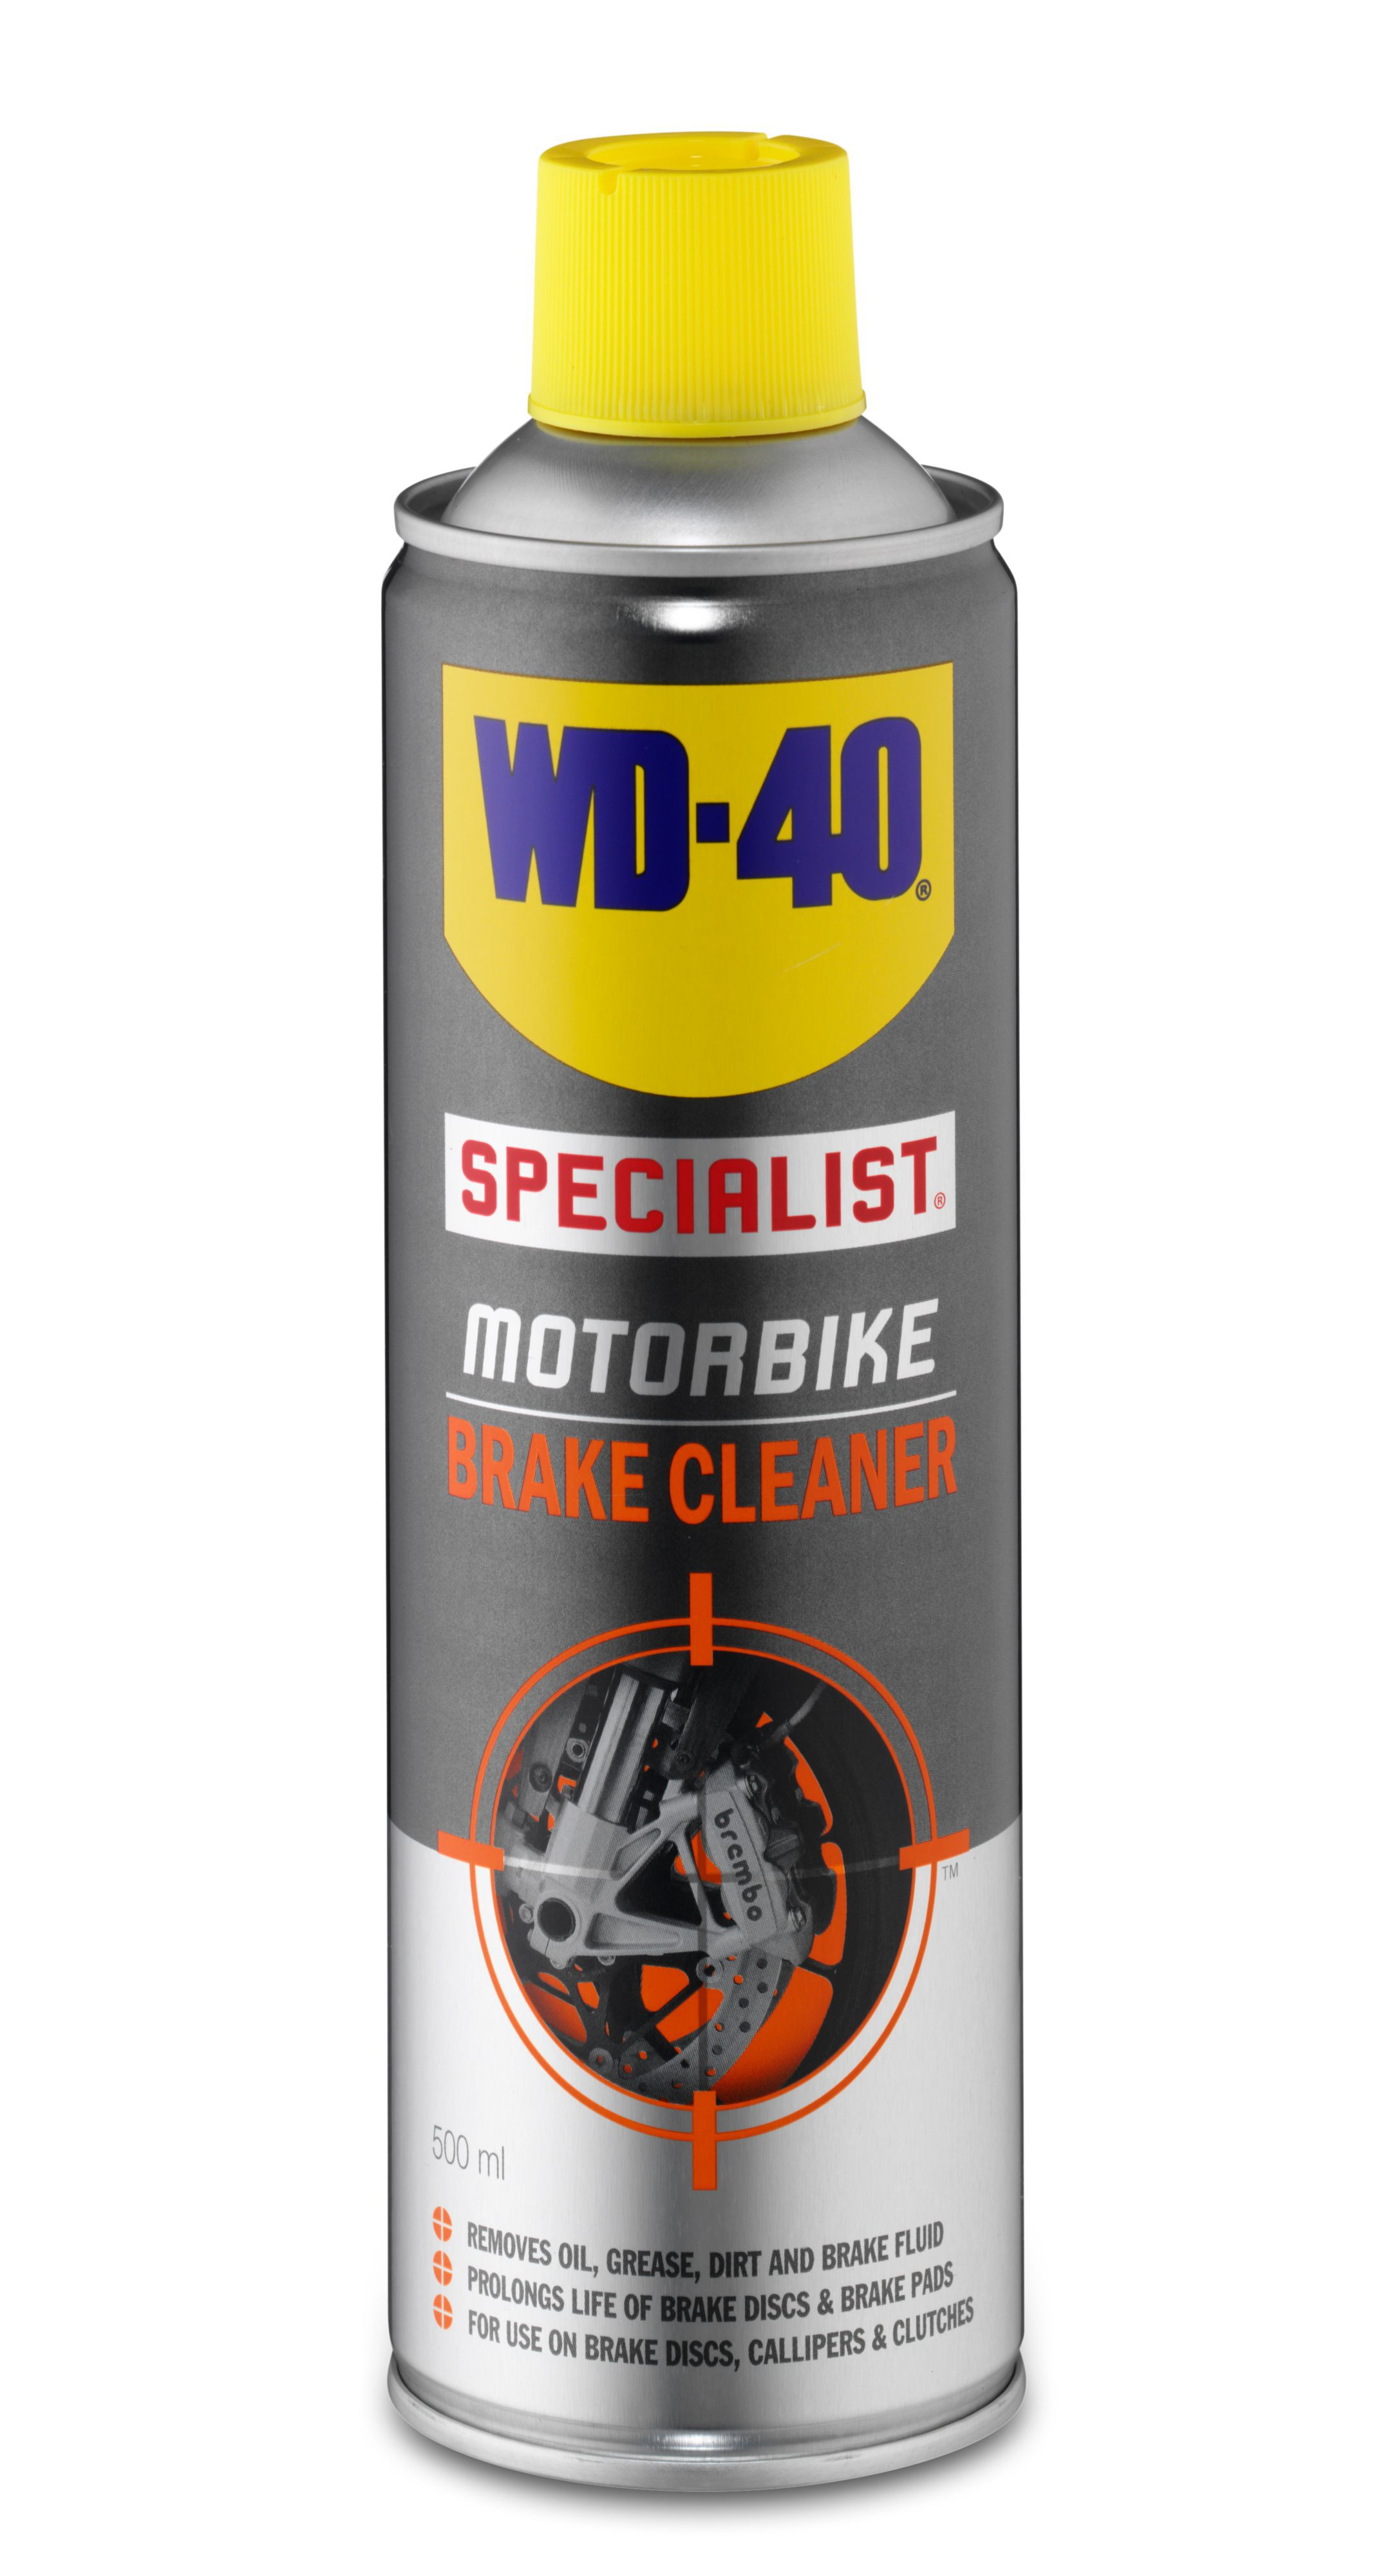 Wd 40 Motorbike Brake Cleaner 500ml Departments Diy At B Amp Q